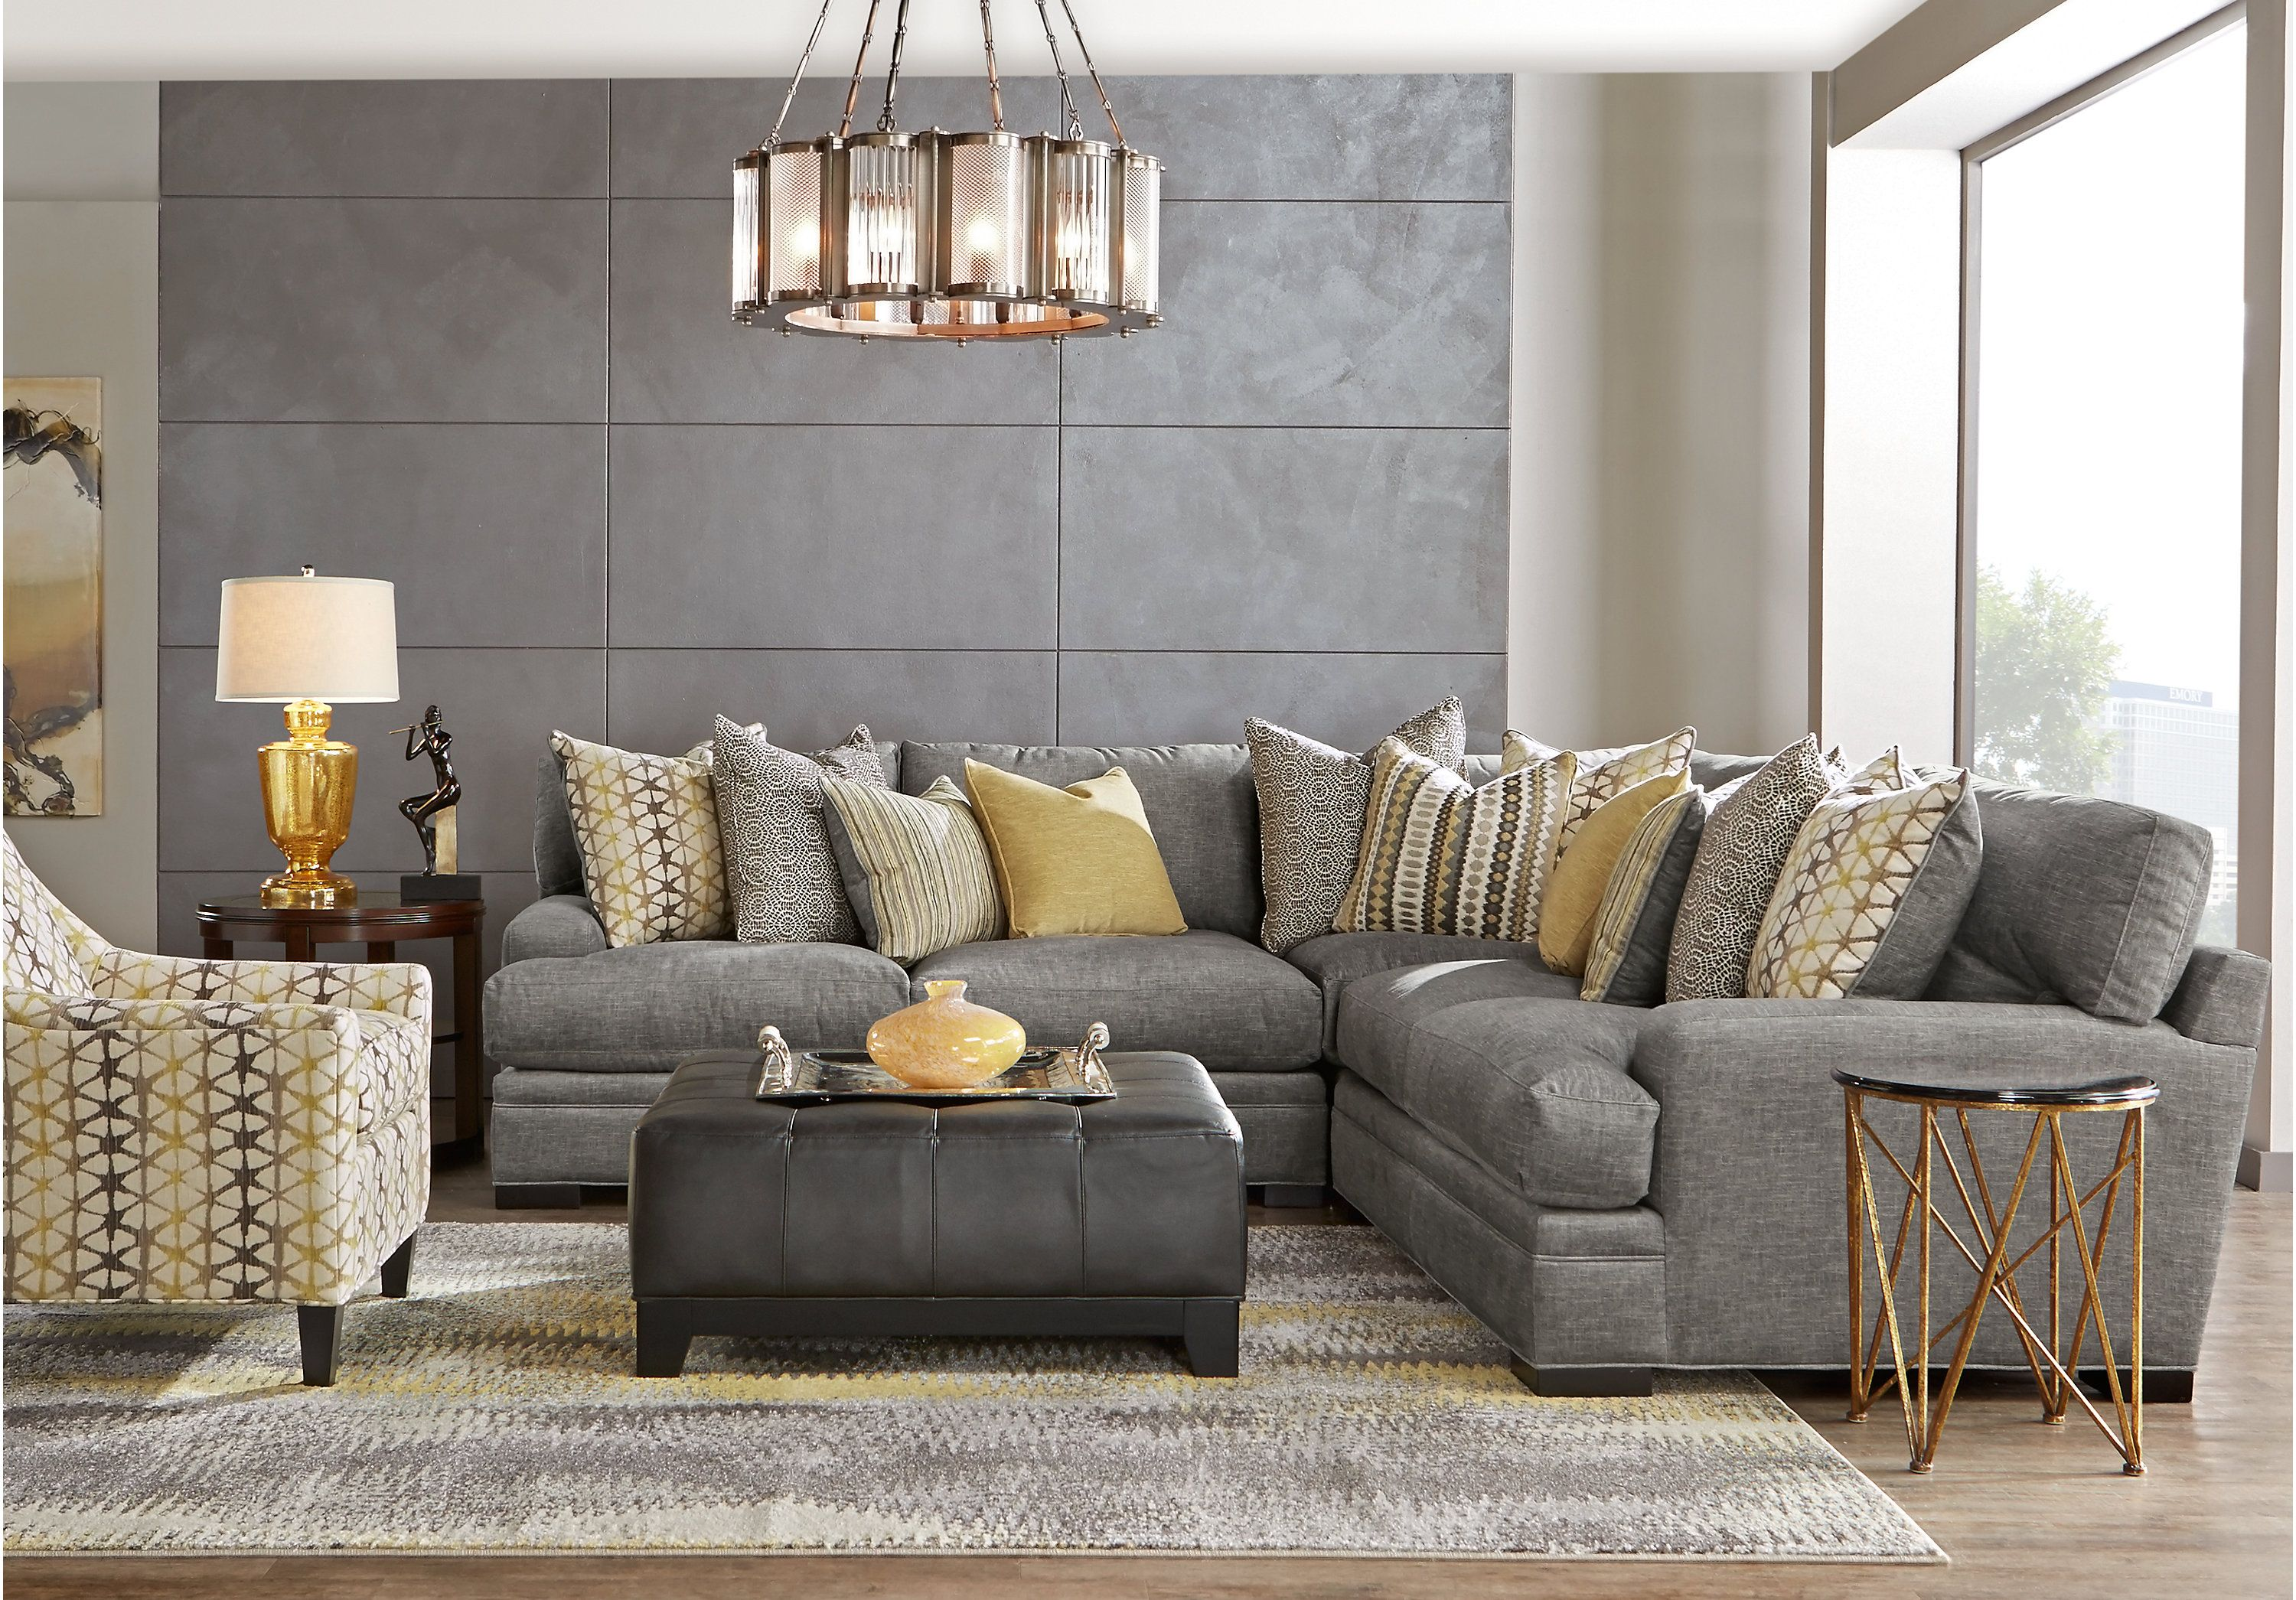 cindy best in go sectionals on a home hydra will crawford shop left to room ideas images that look great living metropolis pinterest sofas find sectional sets rooms pc and at your for